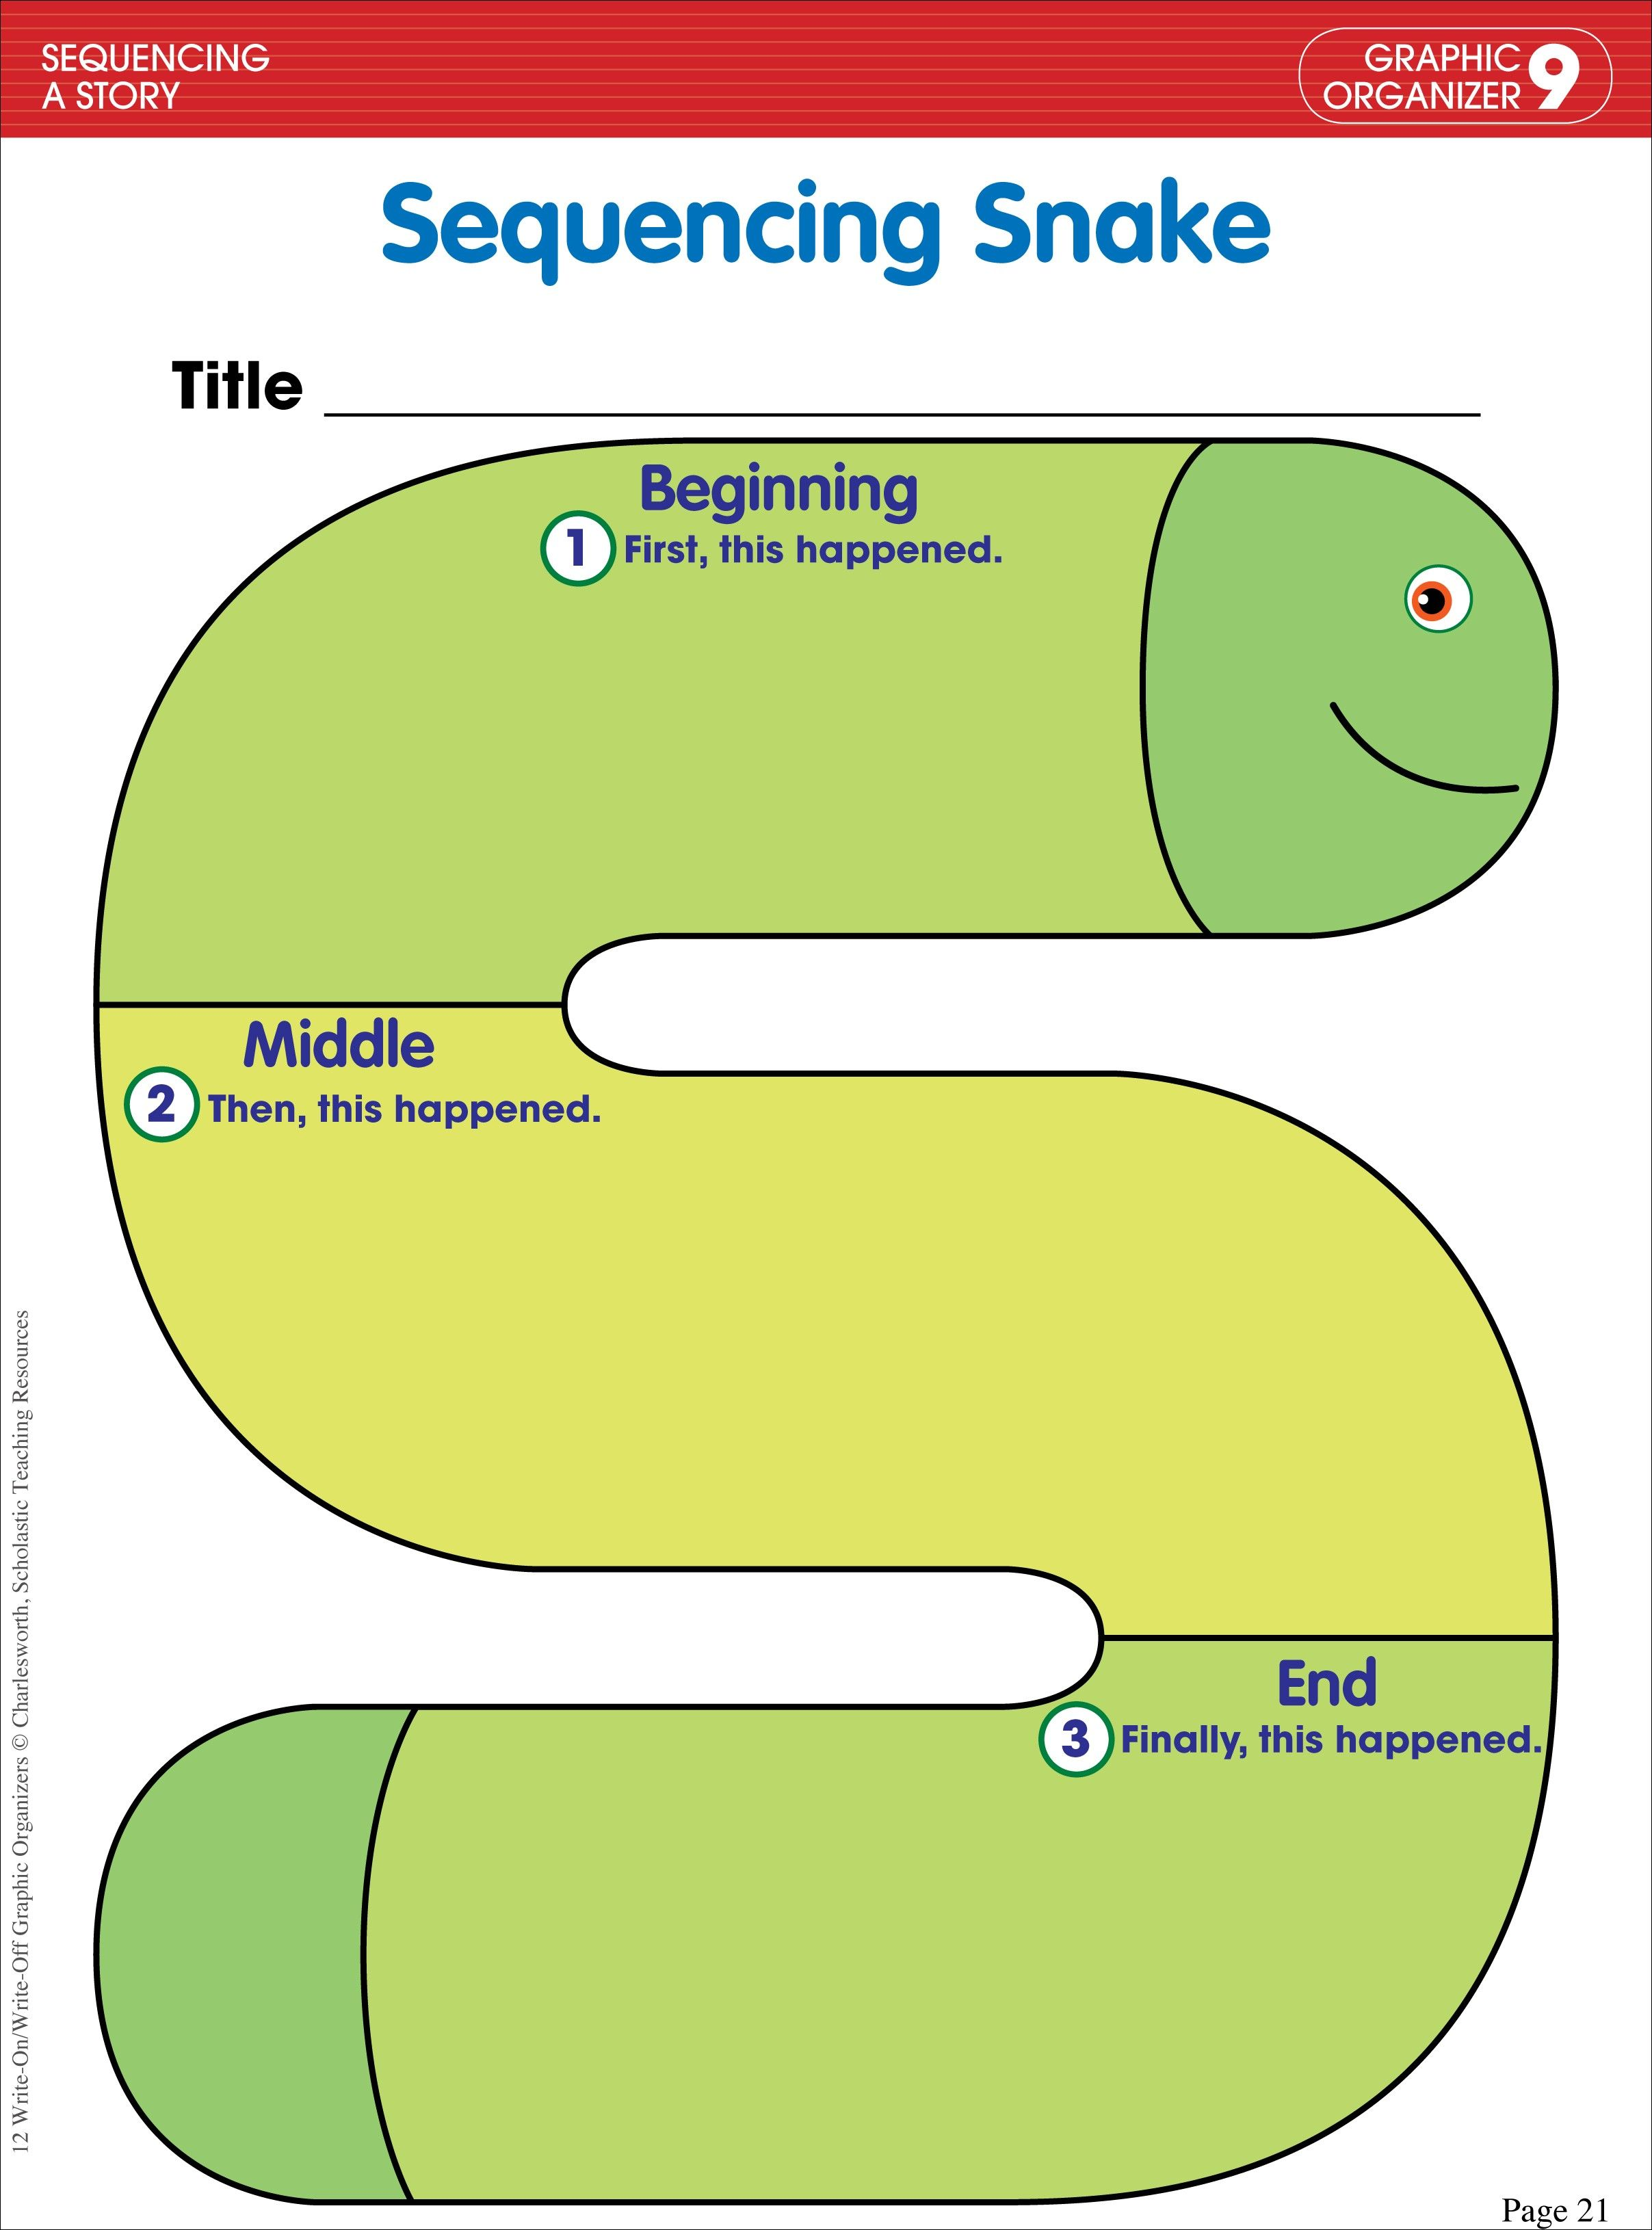 Graphic Organizer Sequencing Snake